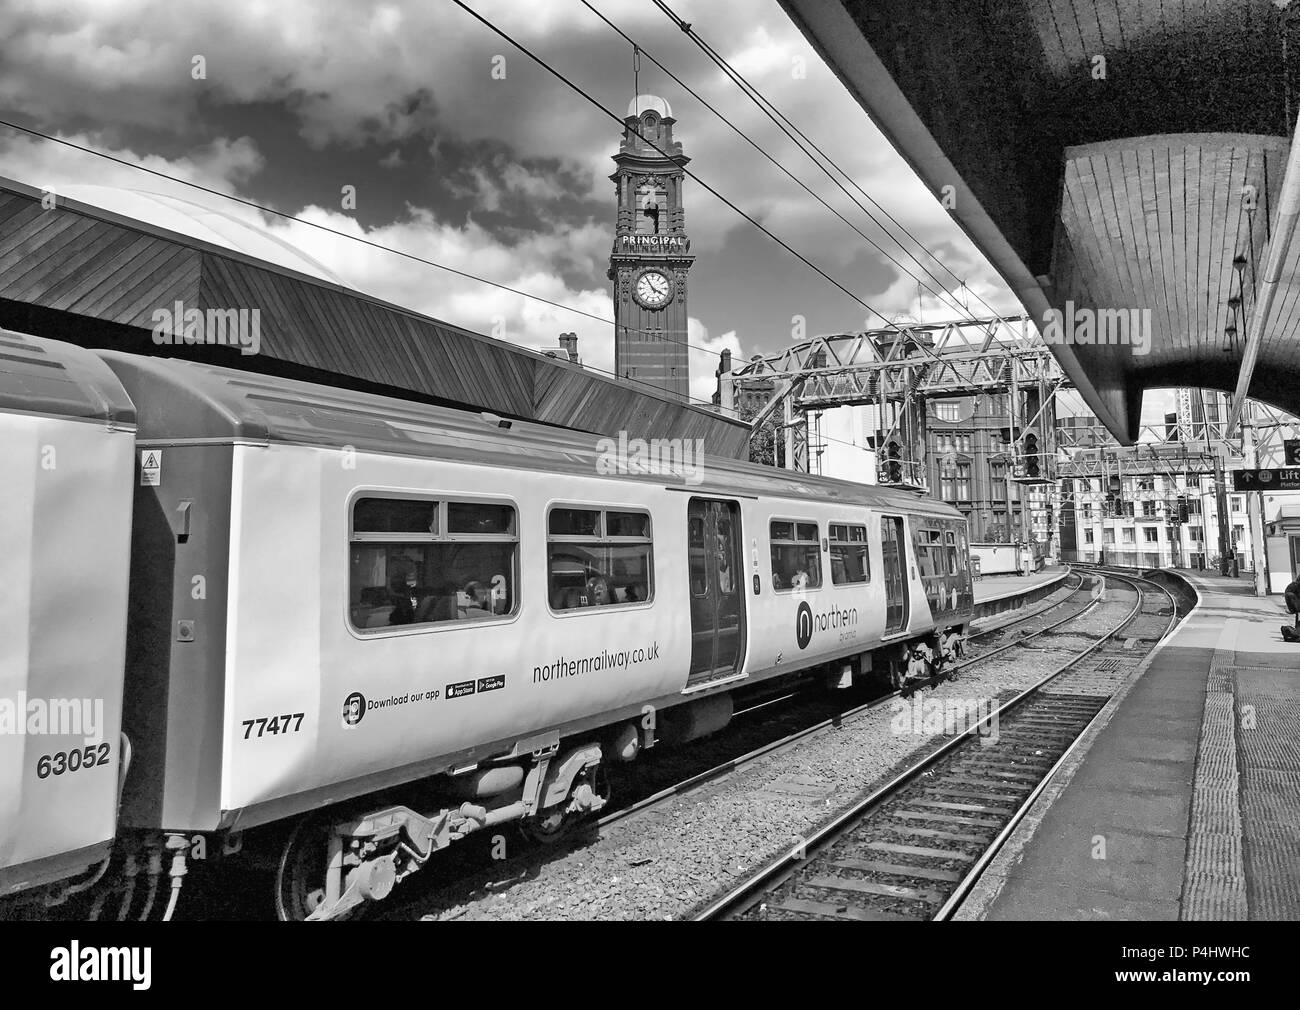 Mono image of Delayed Electric Northern Railway EMU train at Manchester Oxford Road Railway station, North West England, UK, back to the 1970s - Stock Image